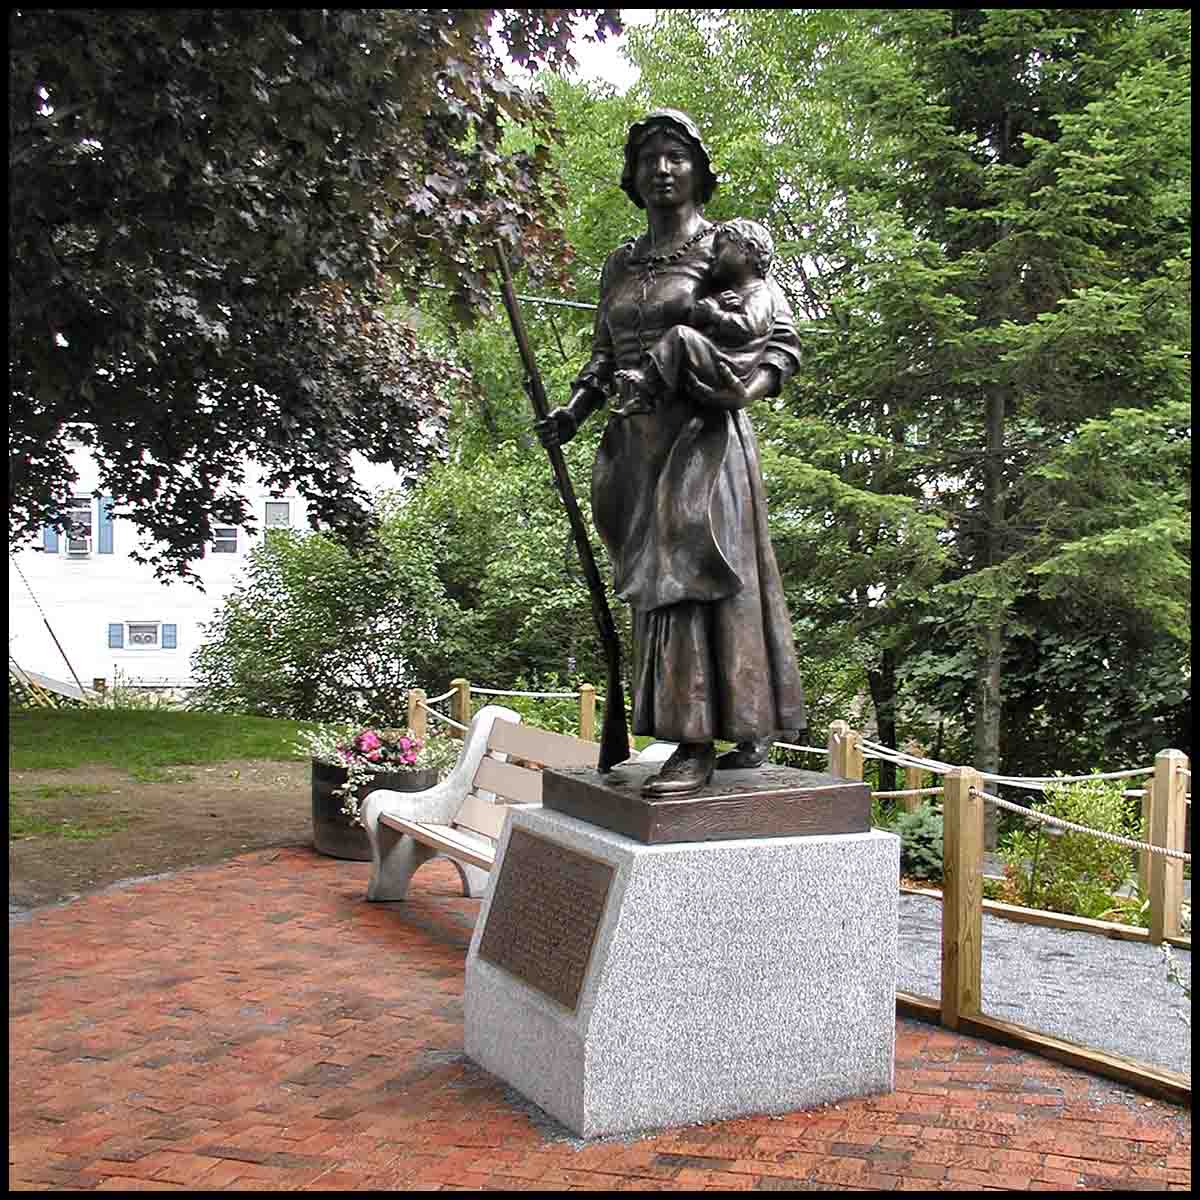 photo of bronze statue of Molly Stark holding child and musket atop stone base with plaque on a brick plaza with surrounding trees